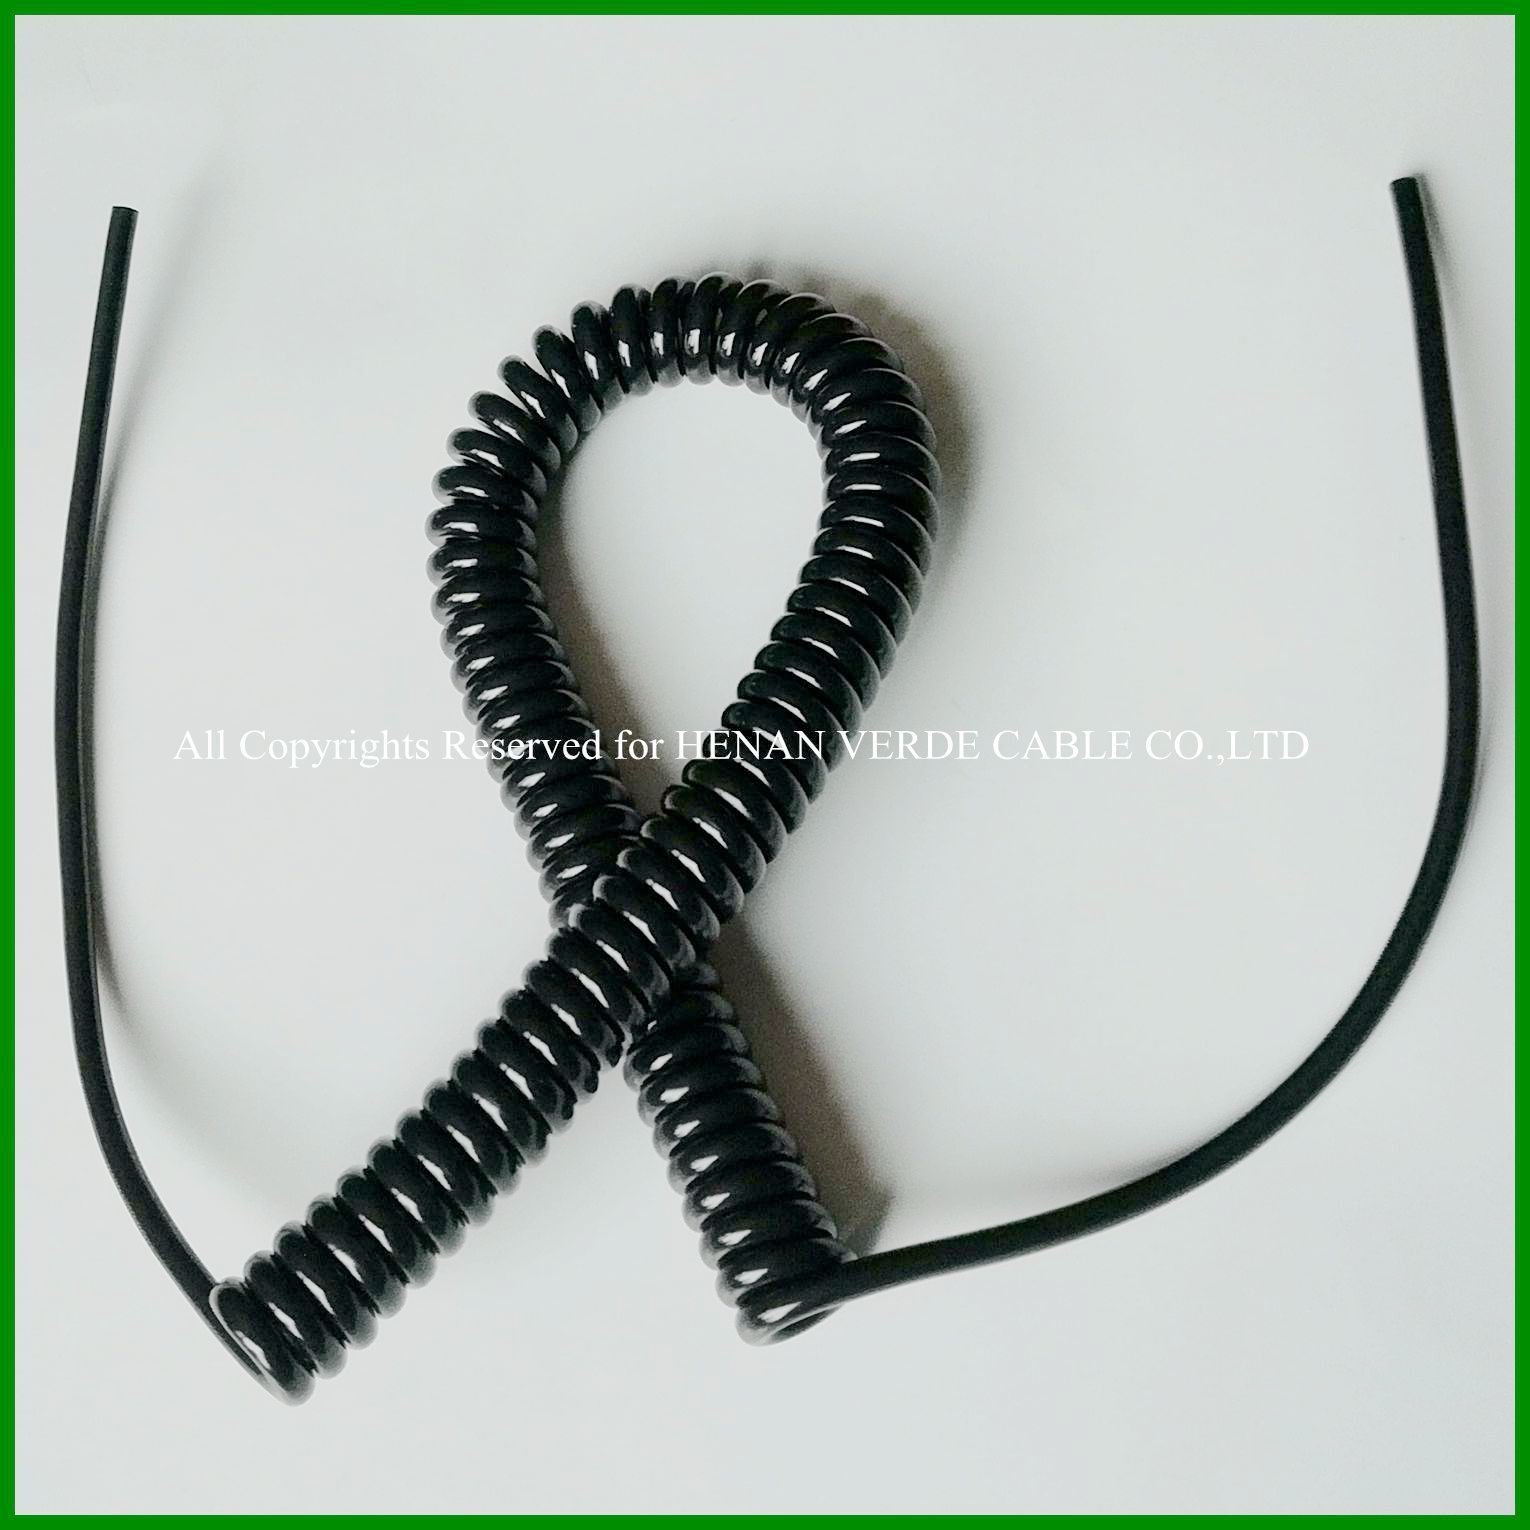 China Water Uv Resistant Flexible Wire Coiled Spring Cables Spiral Pvc Copper Electrical Cable